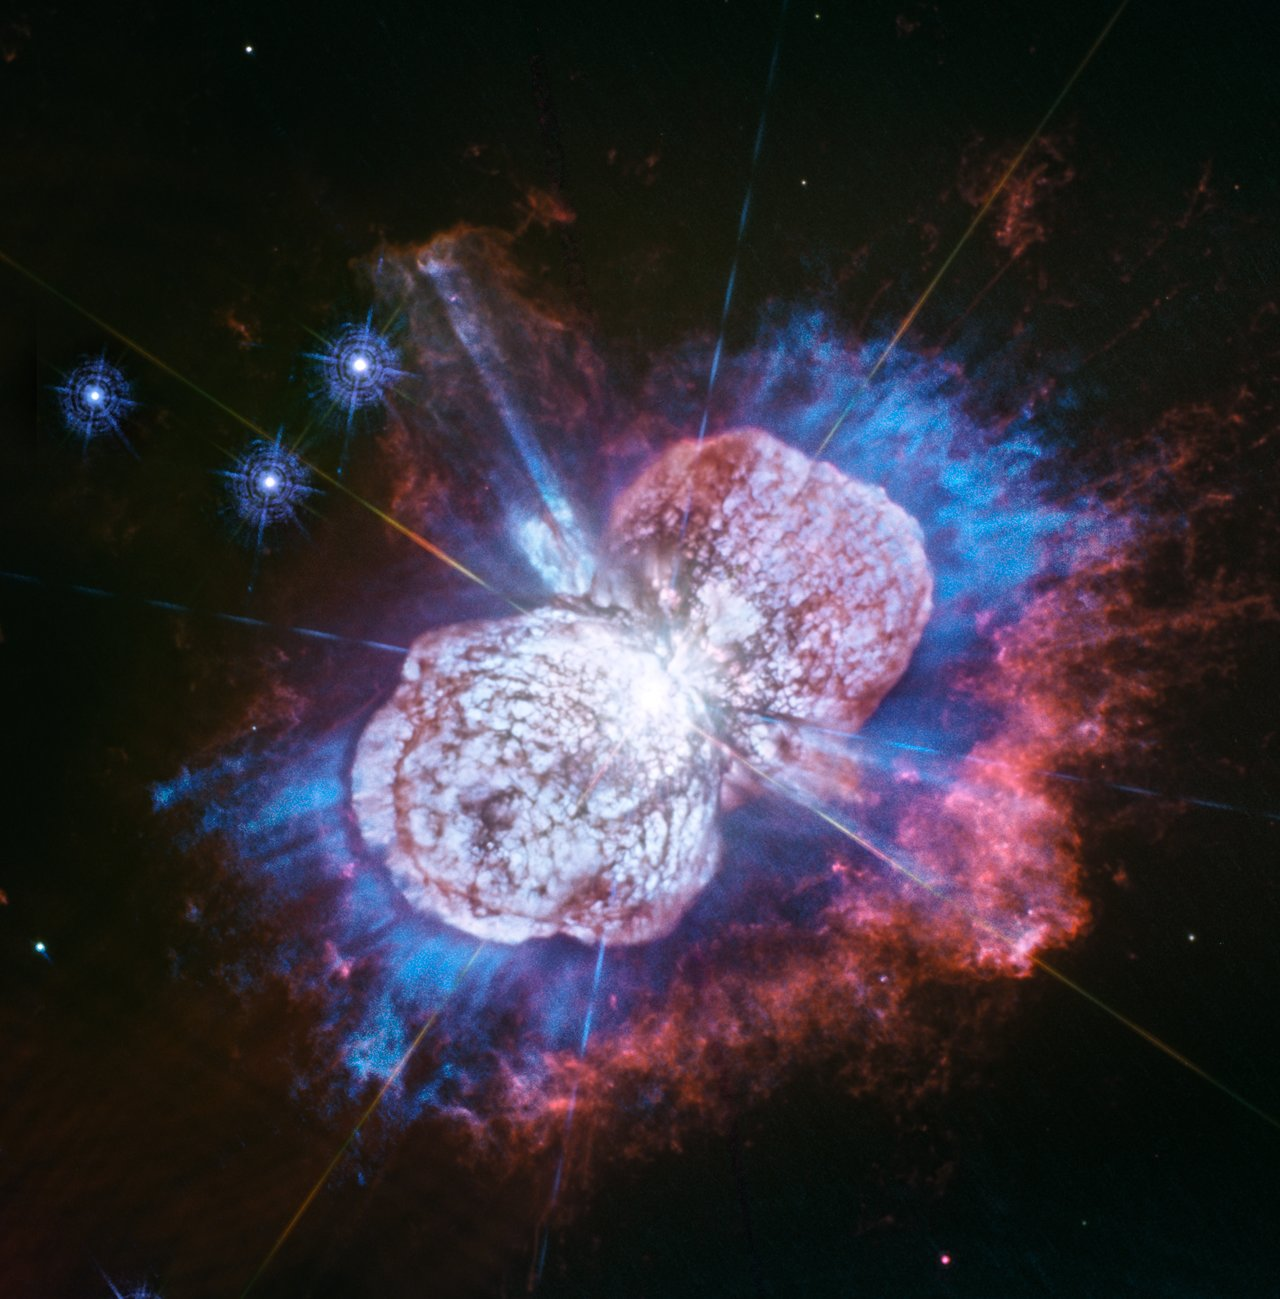 Photo Release: Hubble Captures Cosmic Fireworks in Ultraviolet